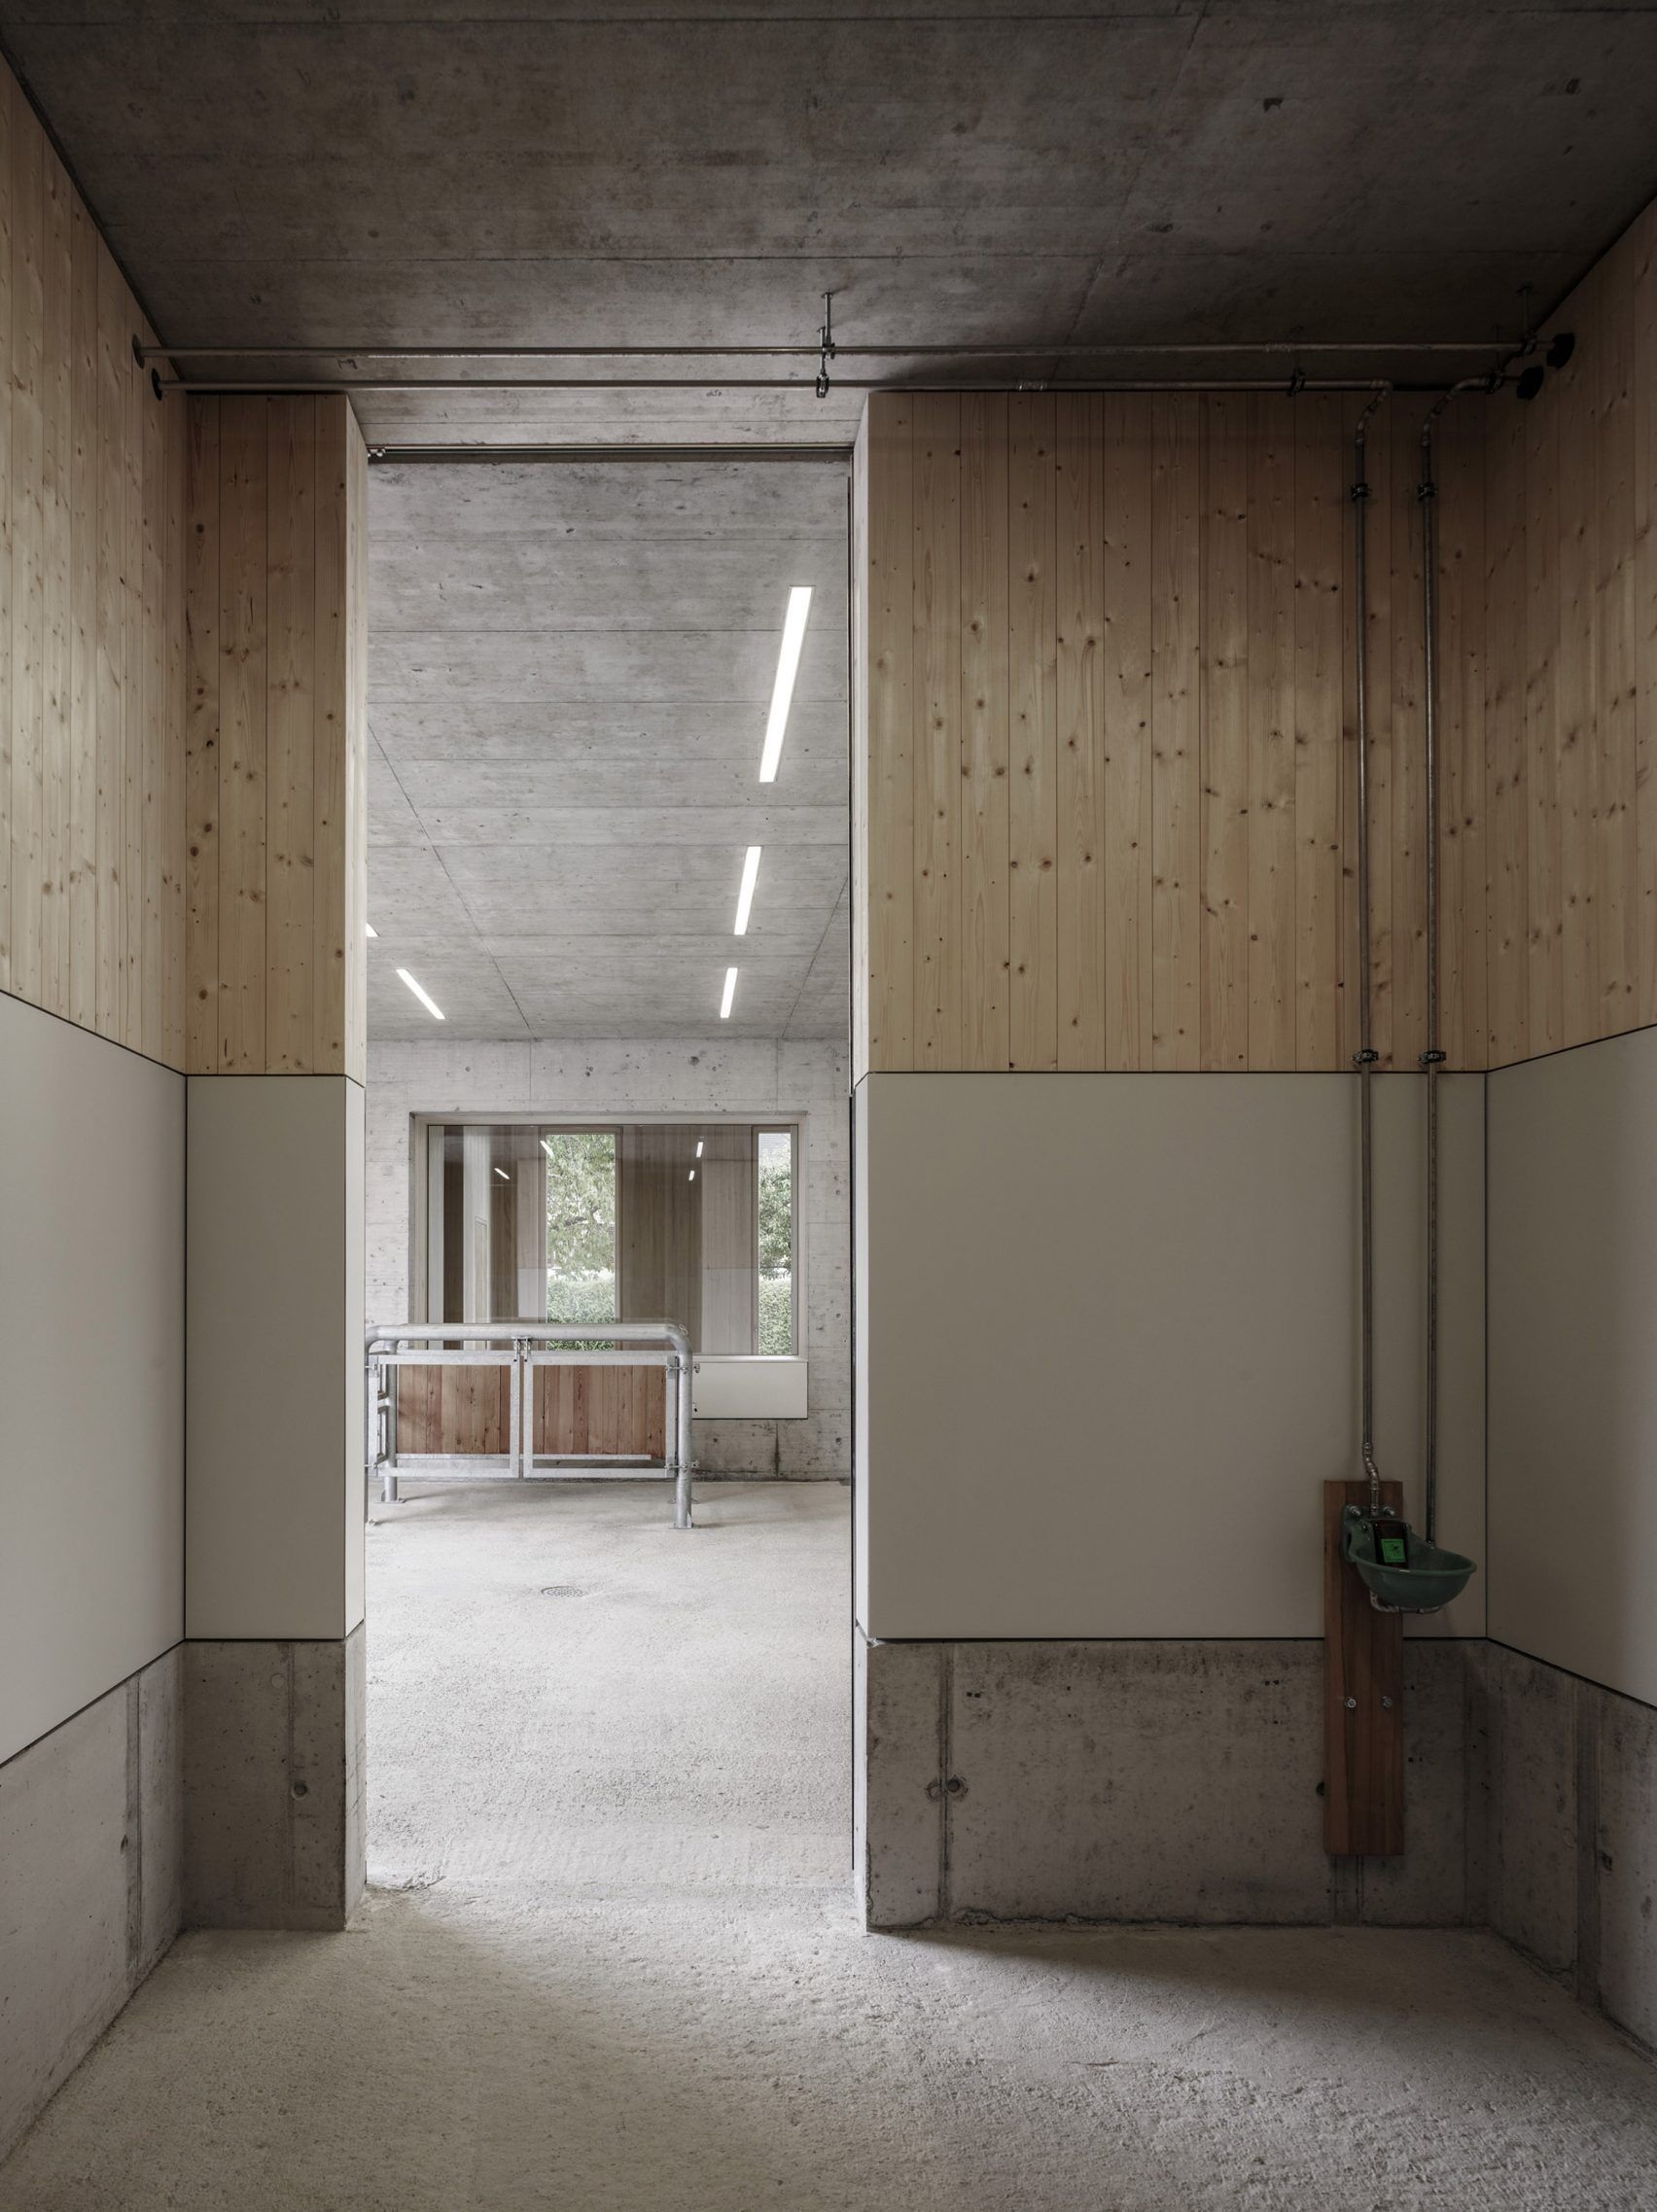 Griss equine veterinary practice in austria by marte marte - Cheap interior detailing near me ...